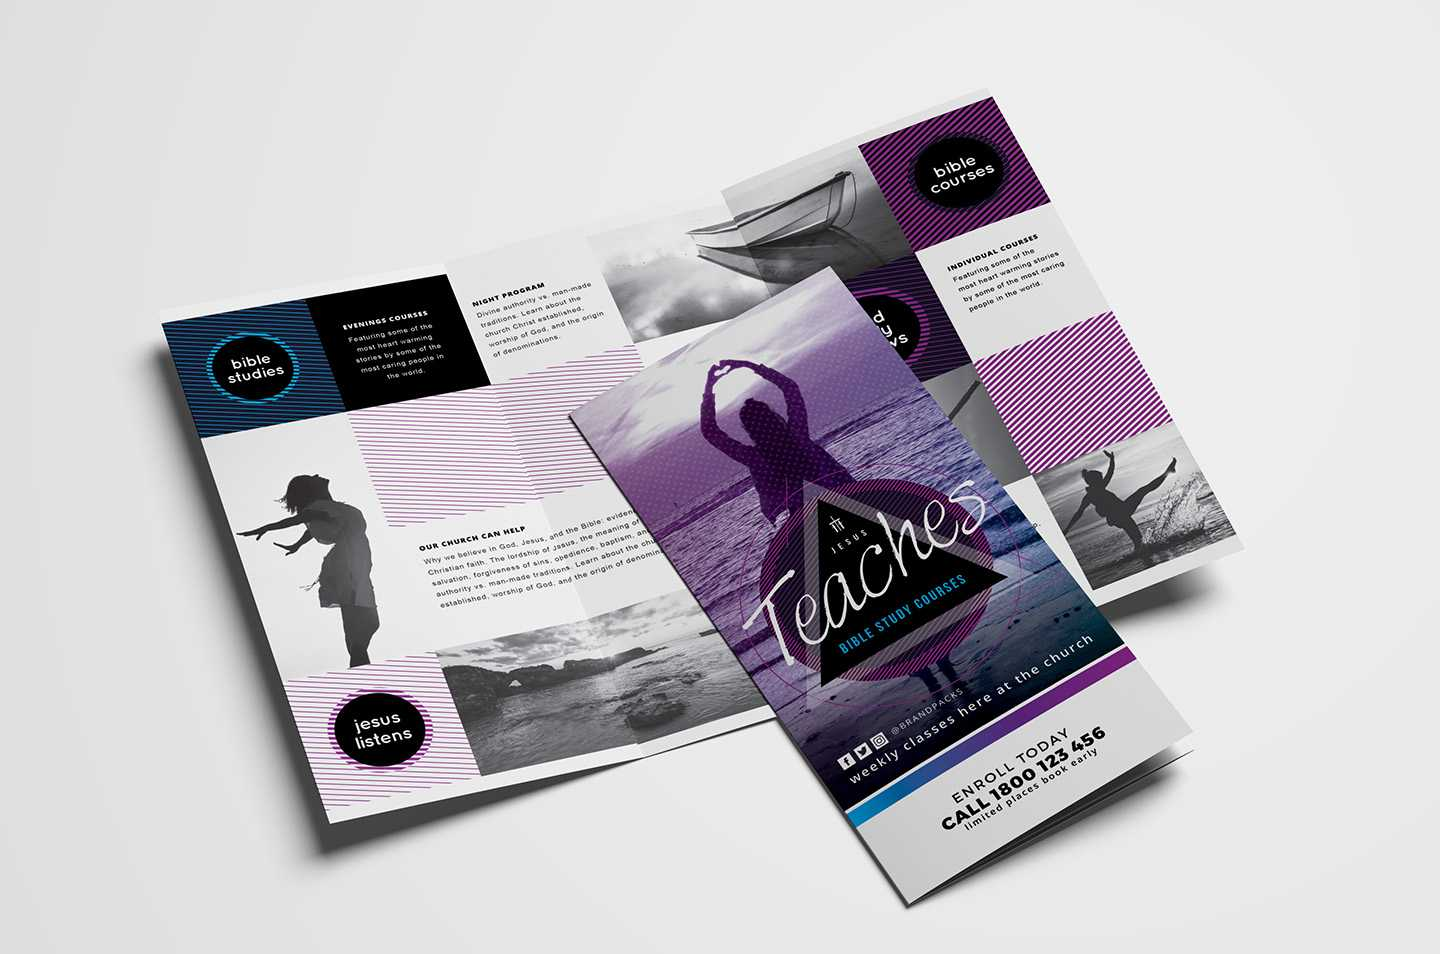 Free Church Templates – Photoshop Psd & Illustrator Ai Regarding Free Illustrator Brochure Templates Download